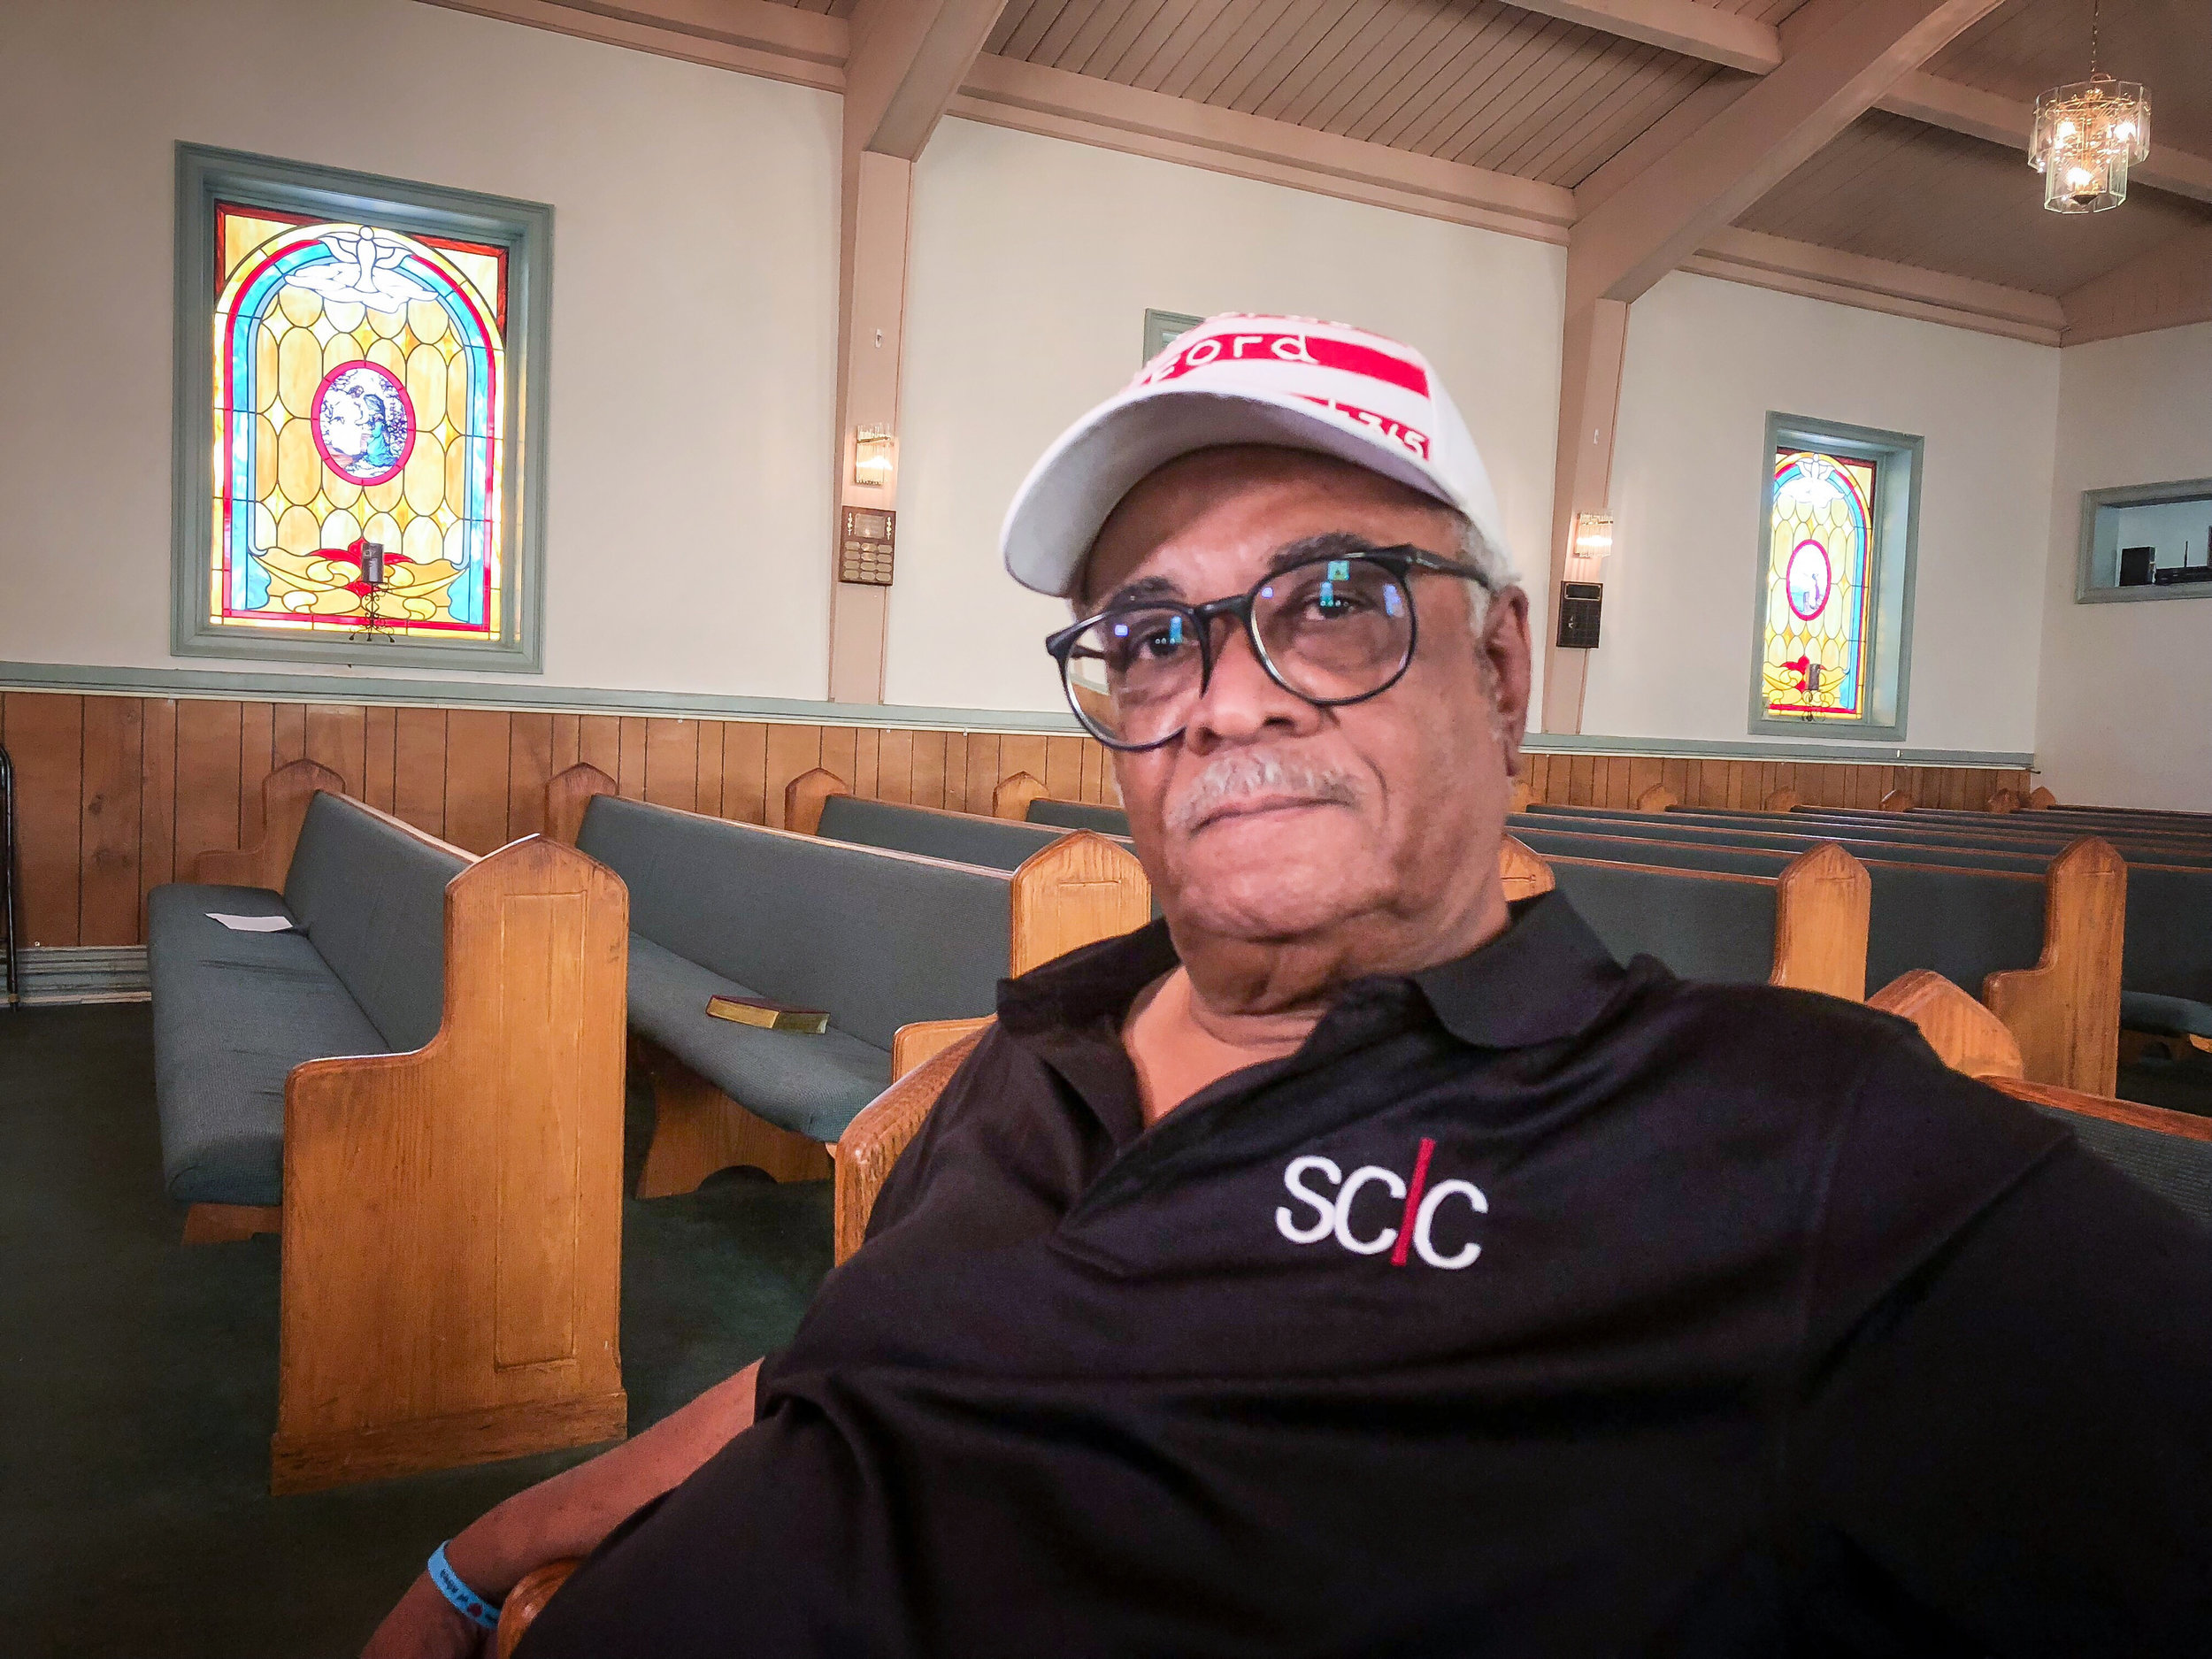 Tyrone Brooks, former Georgia state representative and honored member of the Southern Christian Leadership Conference, at First African Baptist Church in Monroe, GA. This is the site of commemoration portion of the annual Moore's Ford Lynching Re-enactment and a historically significant location for civil rights leaders' meetings in Walton County.